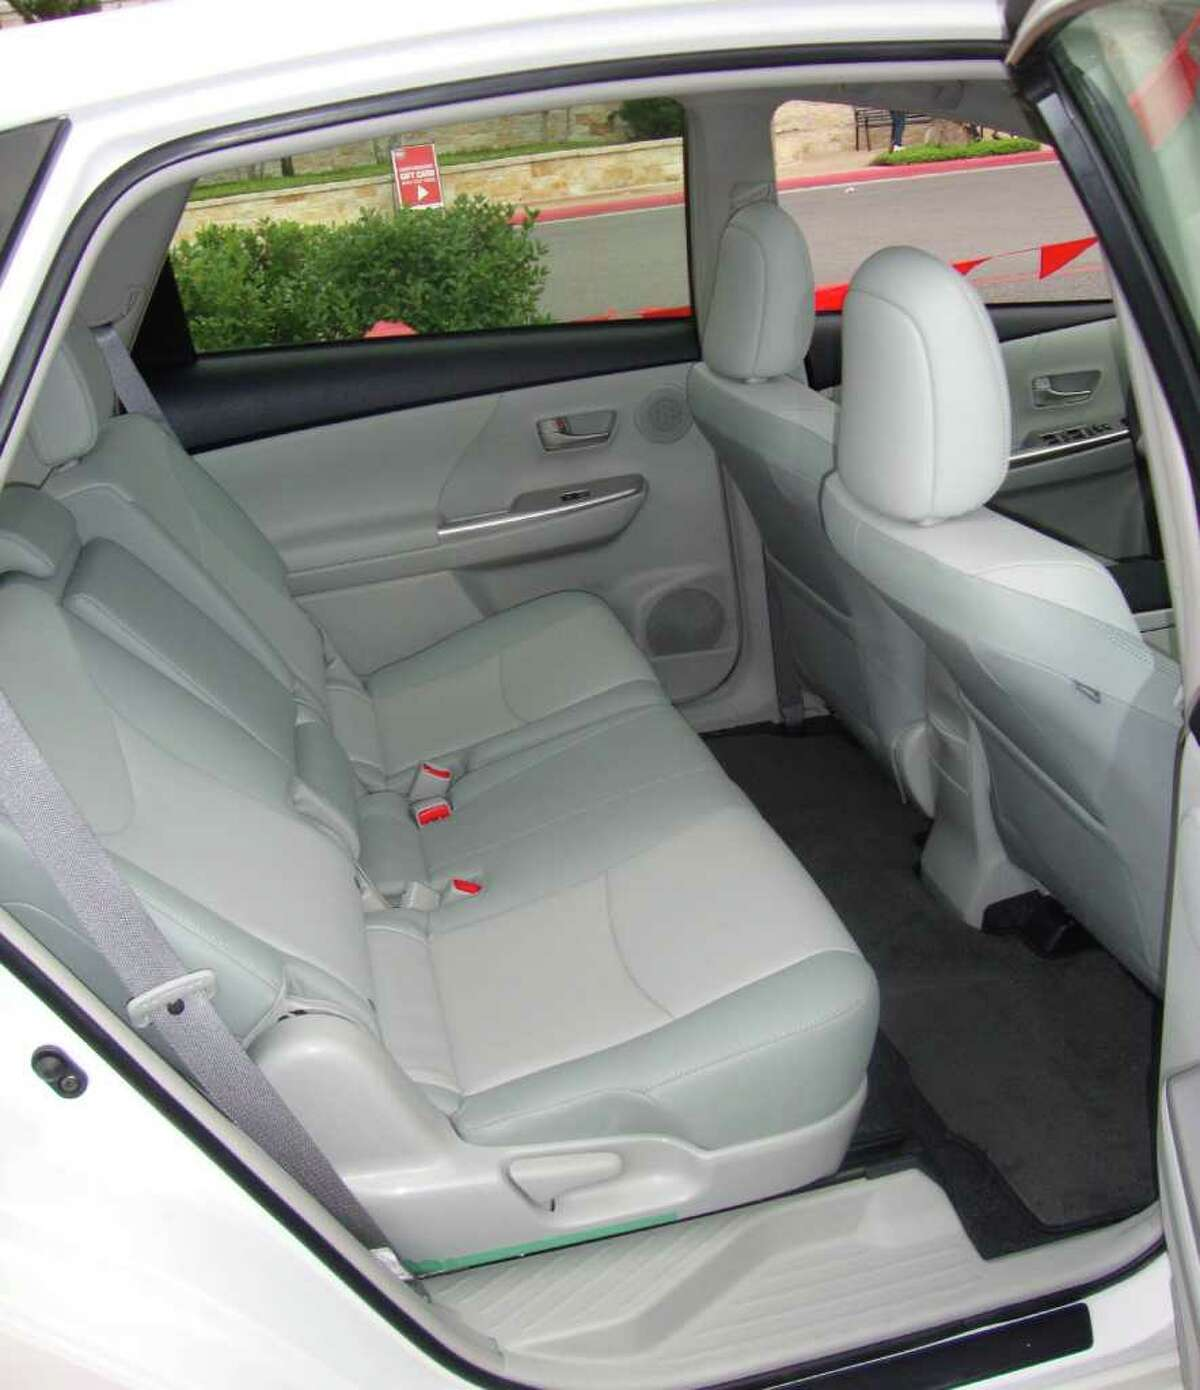 There is room for three people in the back seat of the 2012 Toyota Prius V crossover, which goes on sale later this year.